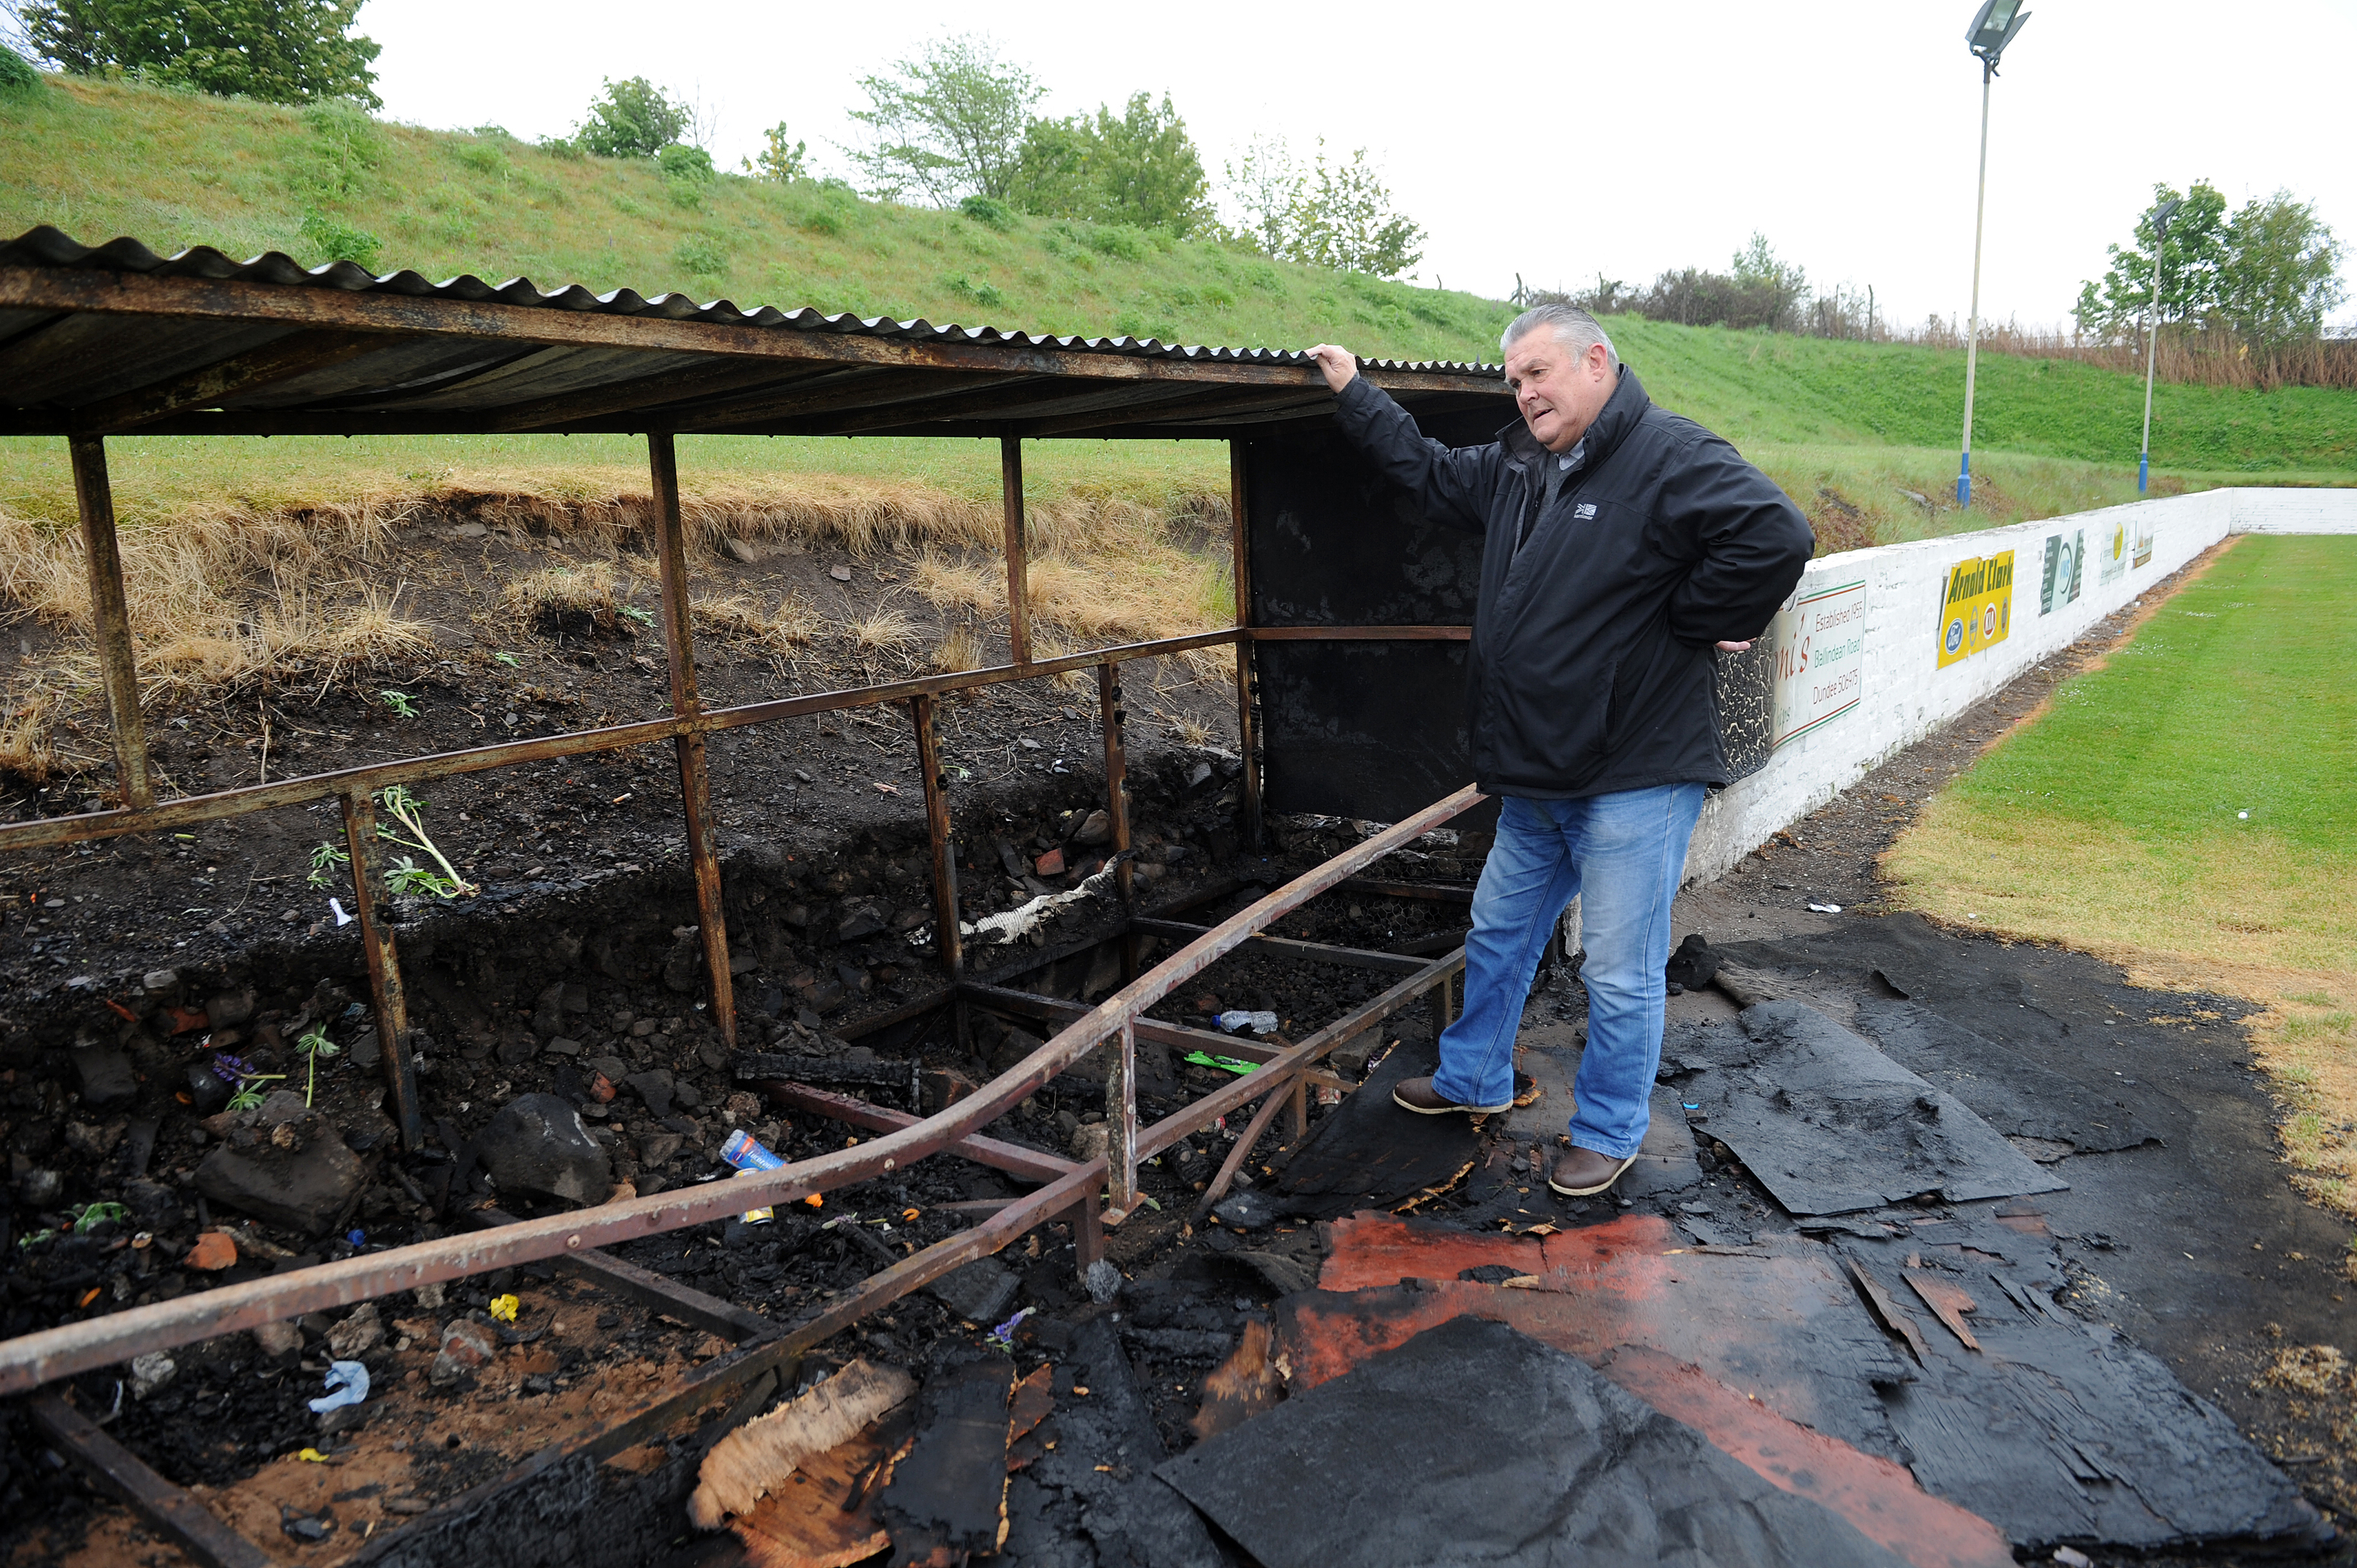 Club secretary Brian Coutts next to the fire-damaged dugout.